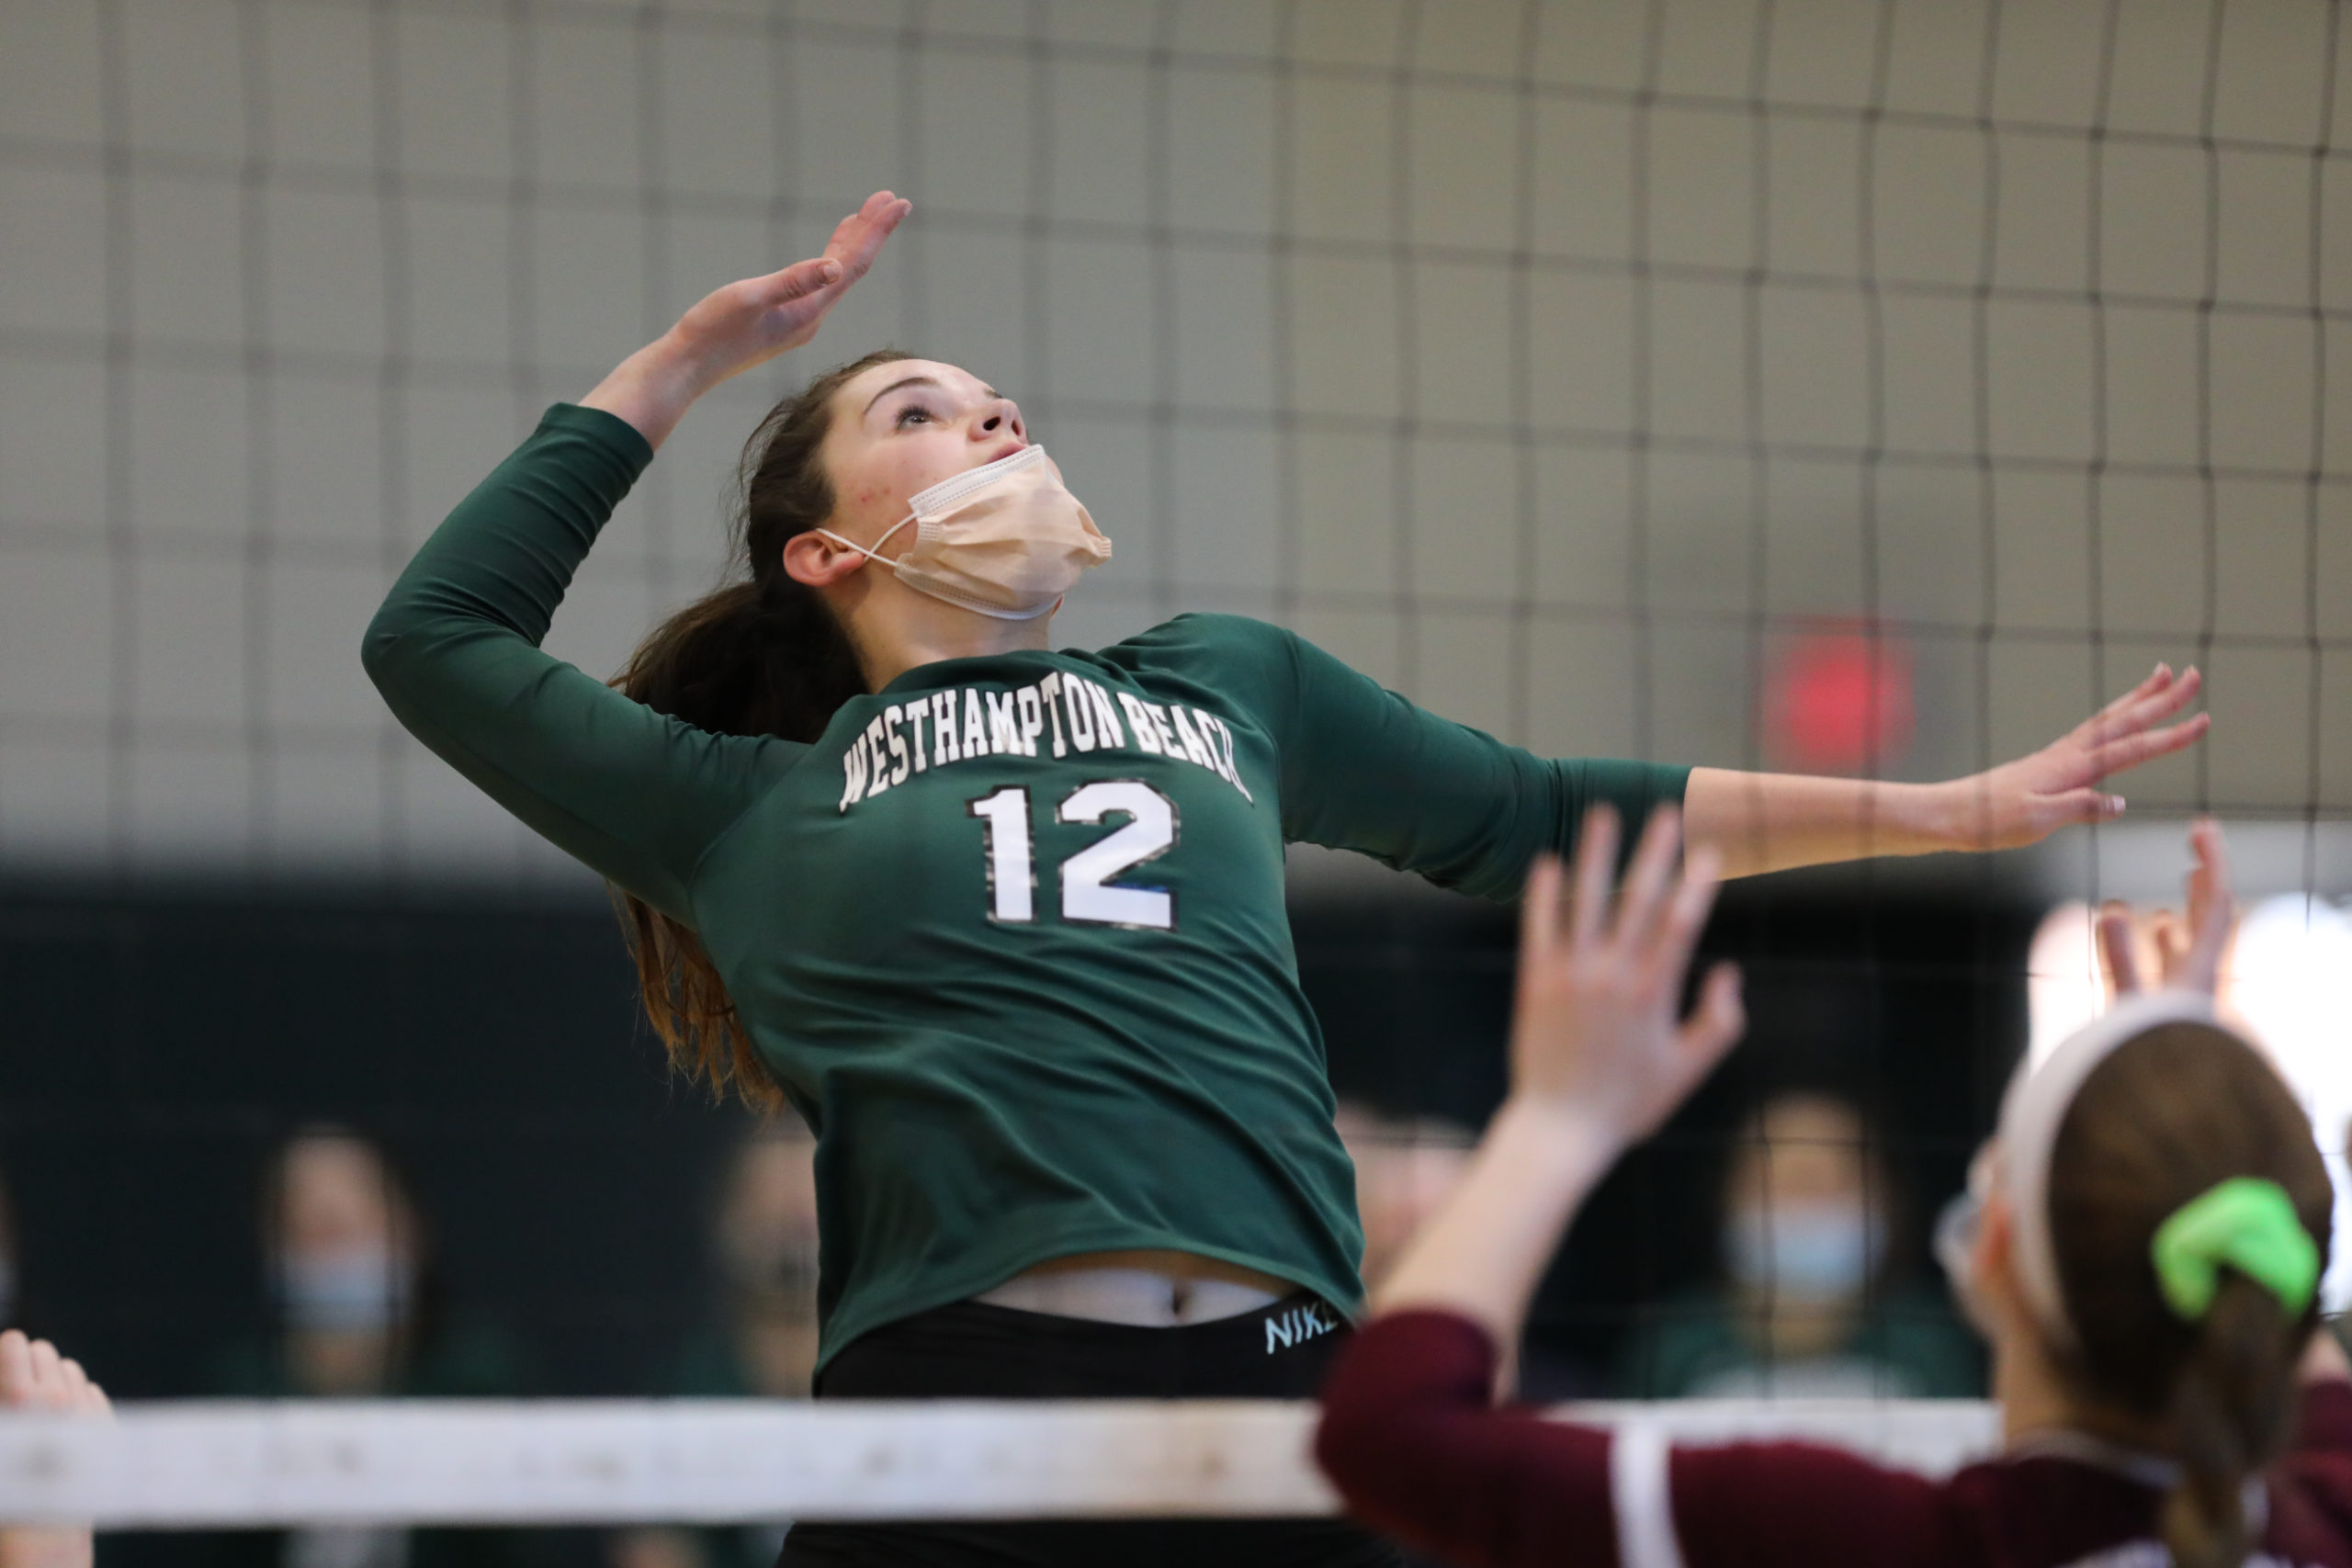 Westhampton Beach senior Ella Donneson leaps to the top of the net to spike the ball.